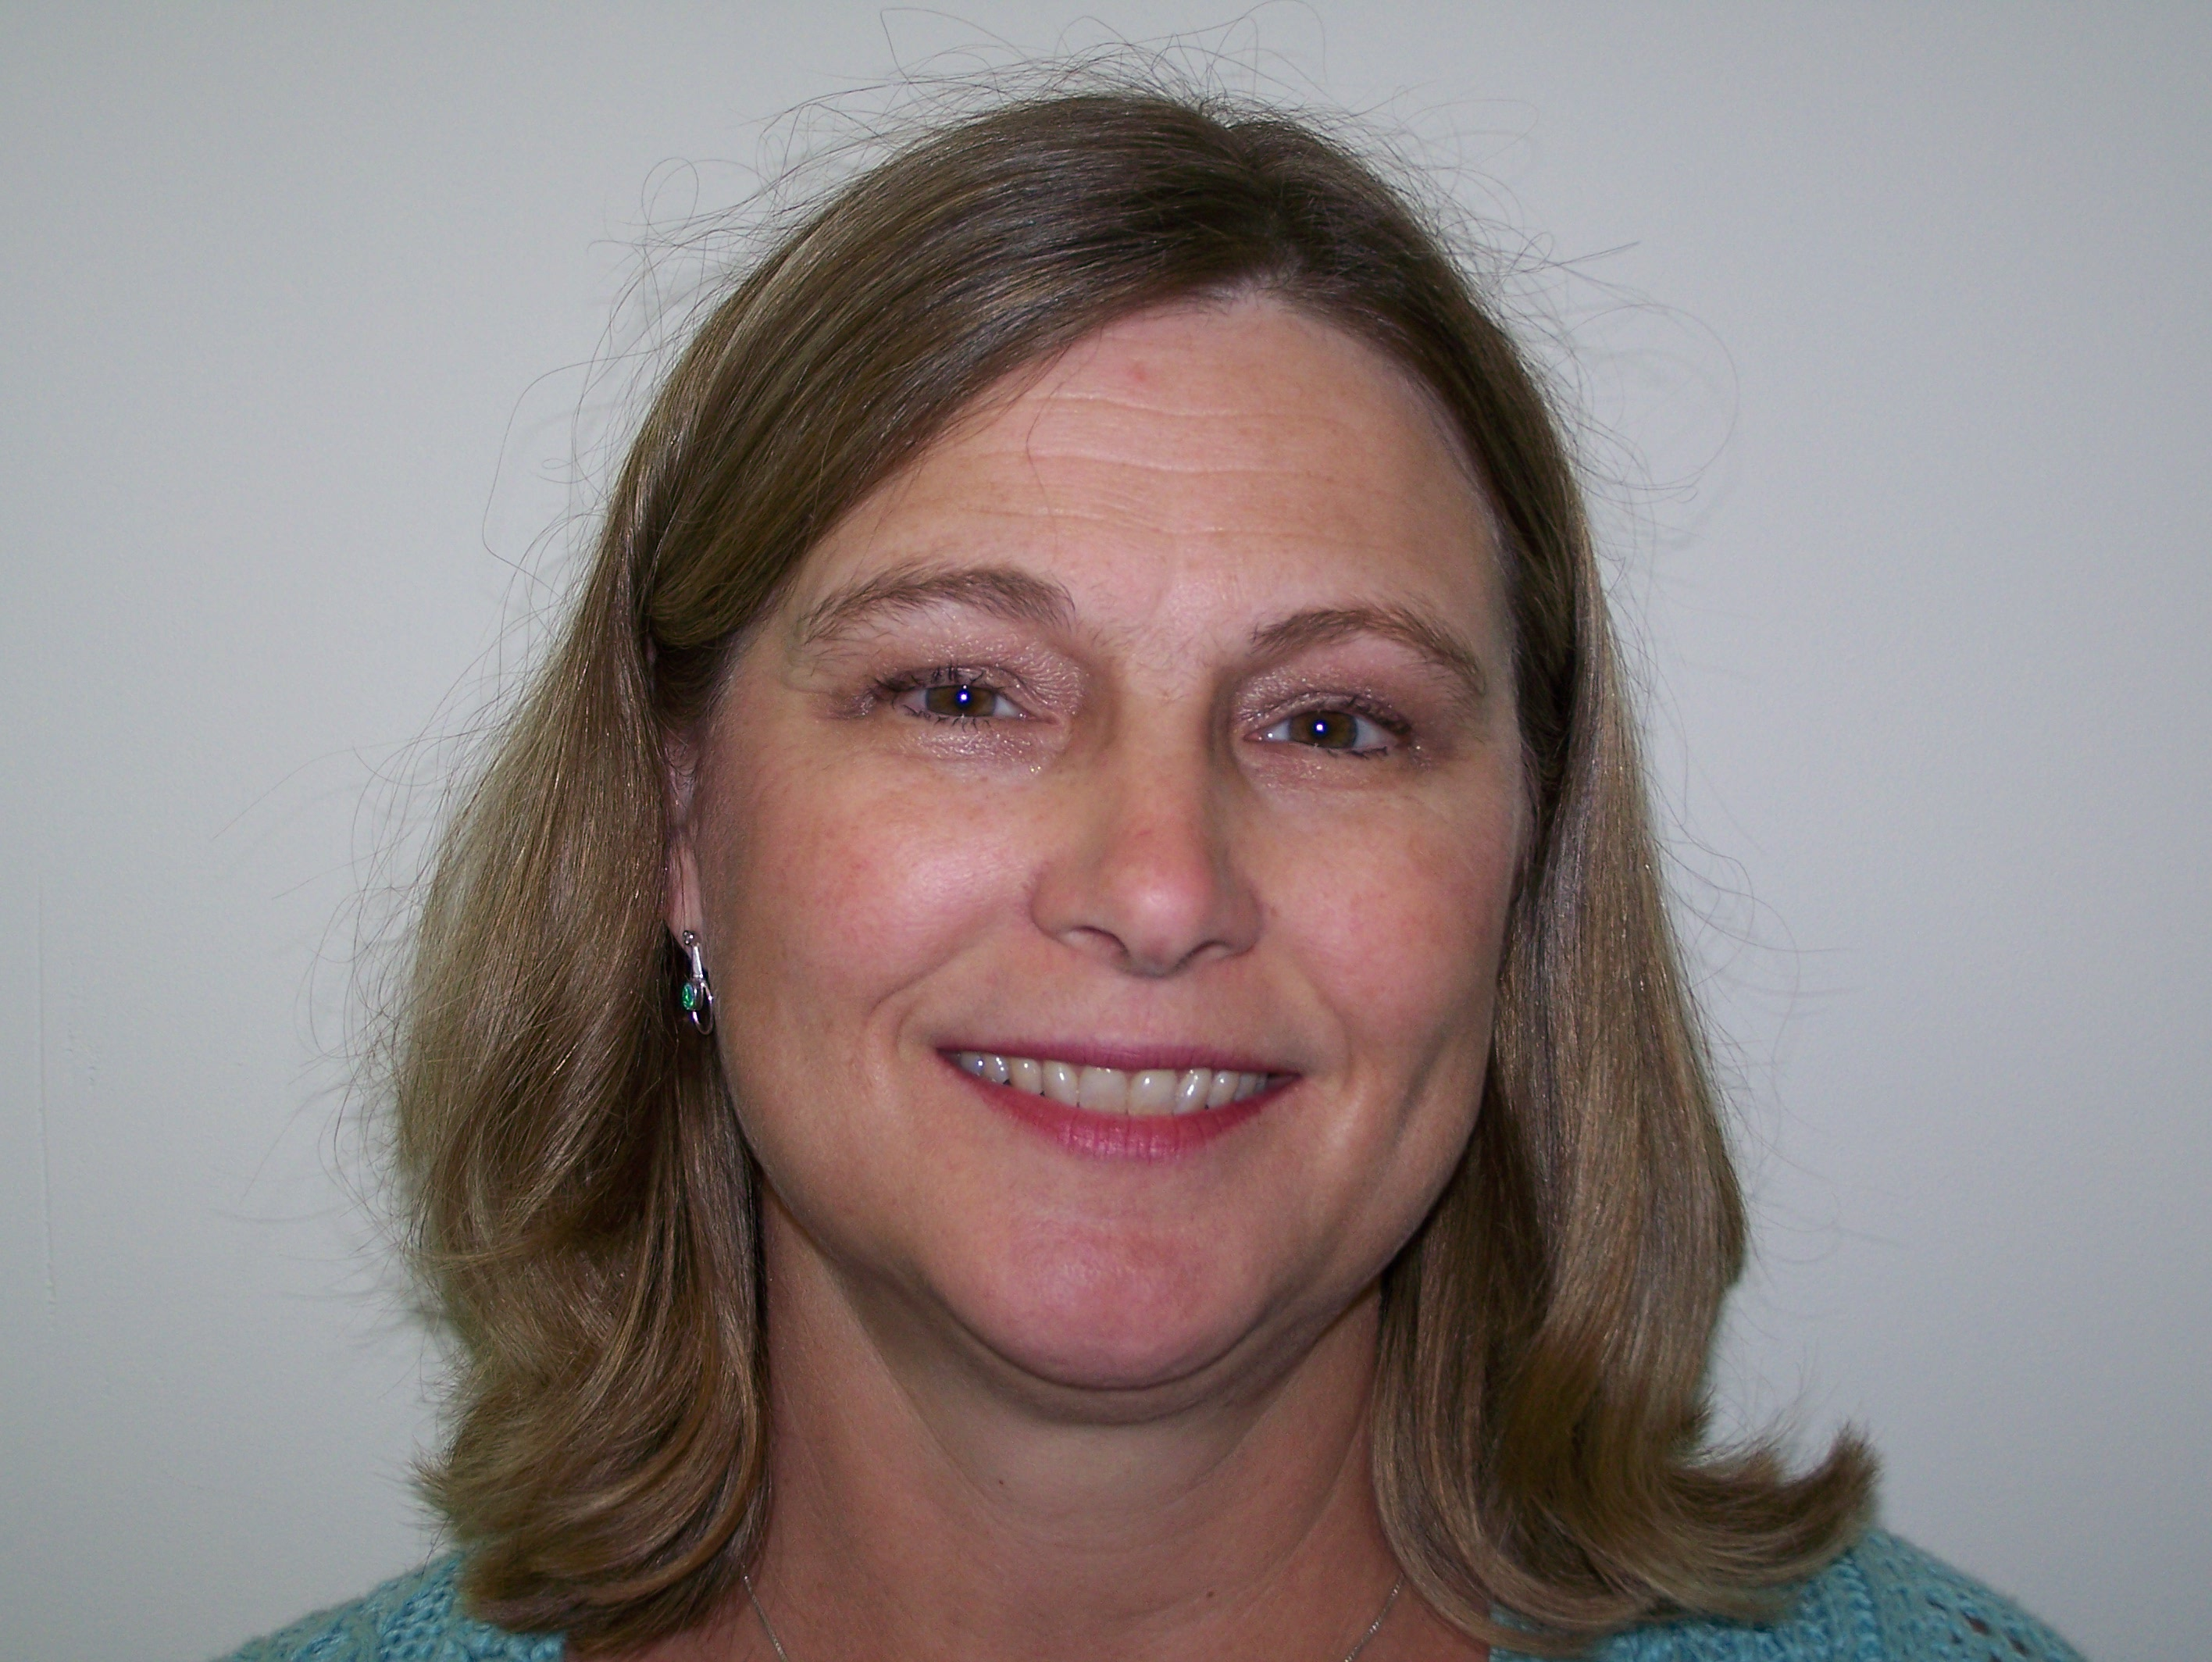 Catherine moe of champaign il named certified nurse educator catherine s moe ms rn cne xflitez Images